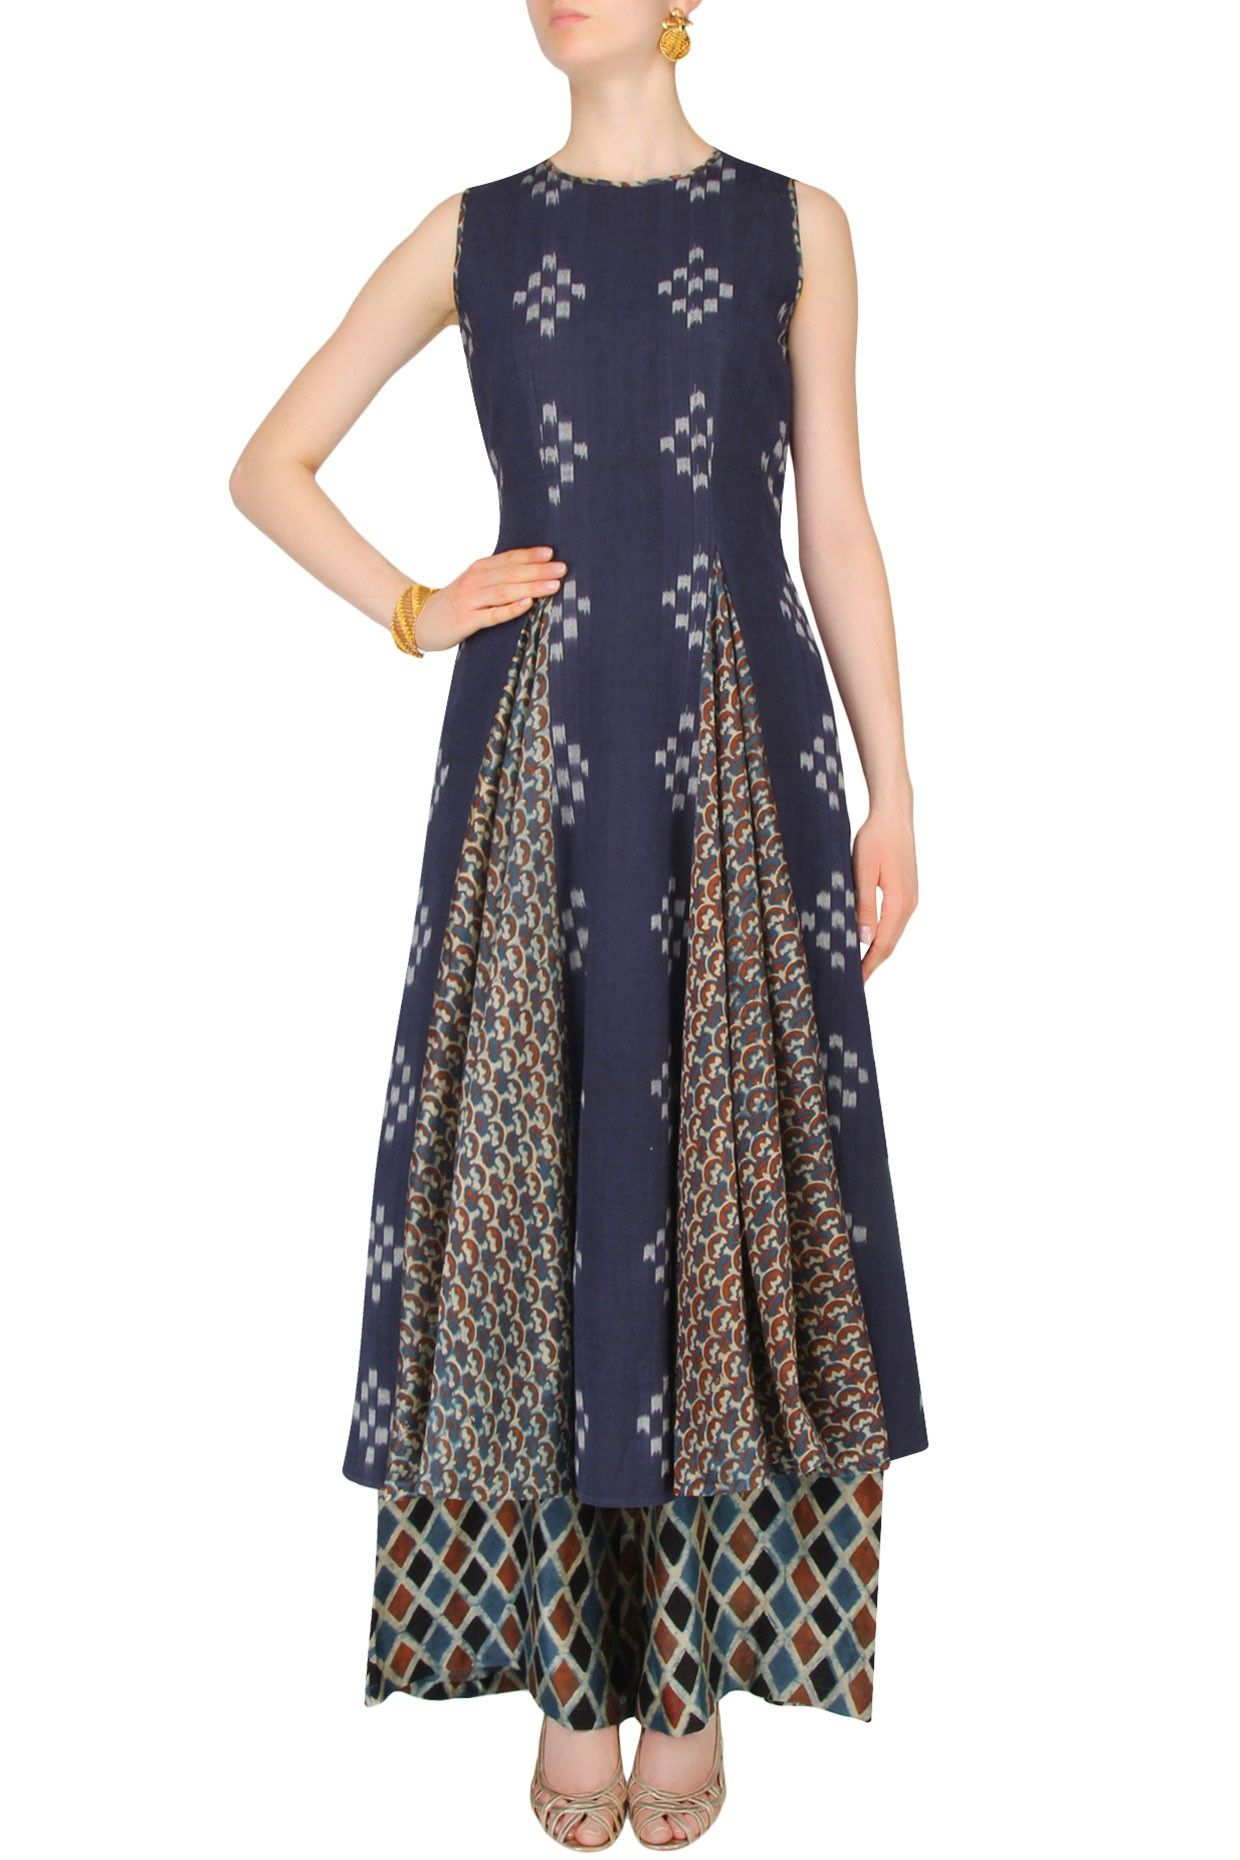 42d61a0cc954c Indigo printed tunic and chanderi palazzo pants set available only at  Pernia s Pop Up Shop.